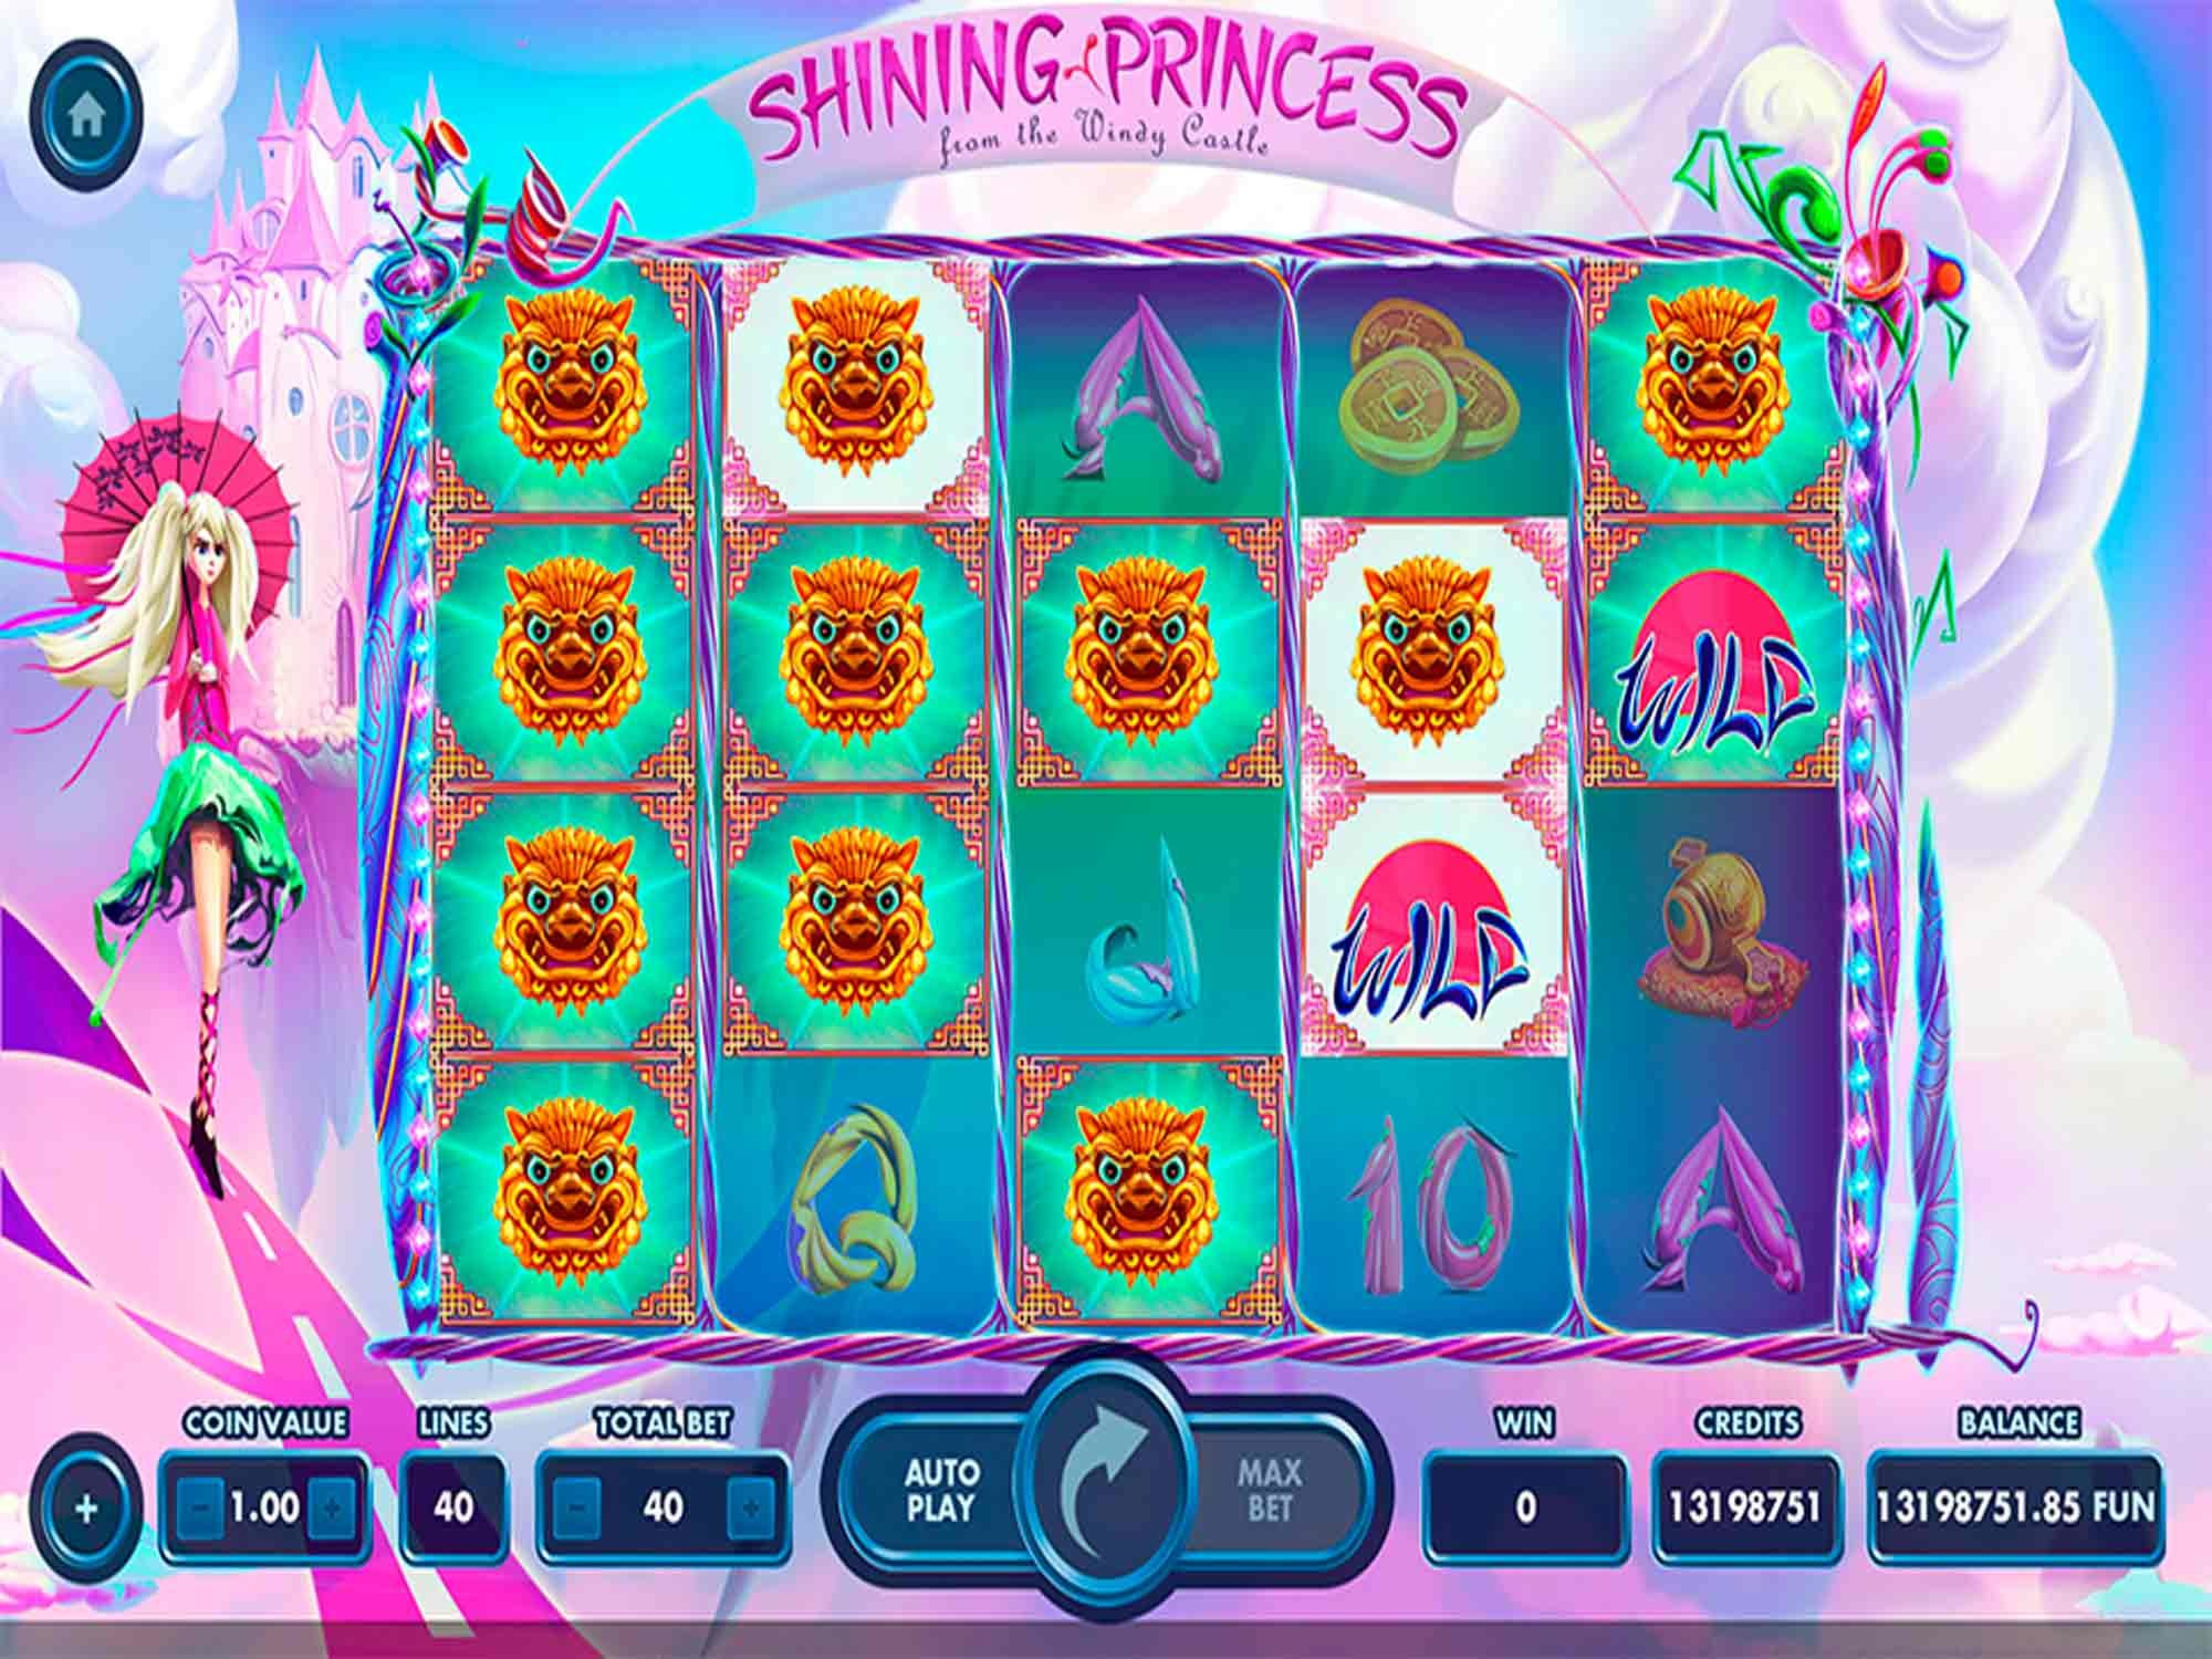 The Shining Princess Online Slot Demo Game by NetGame